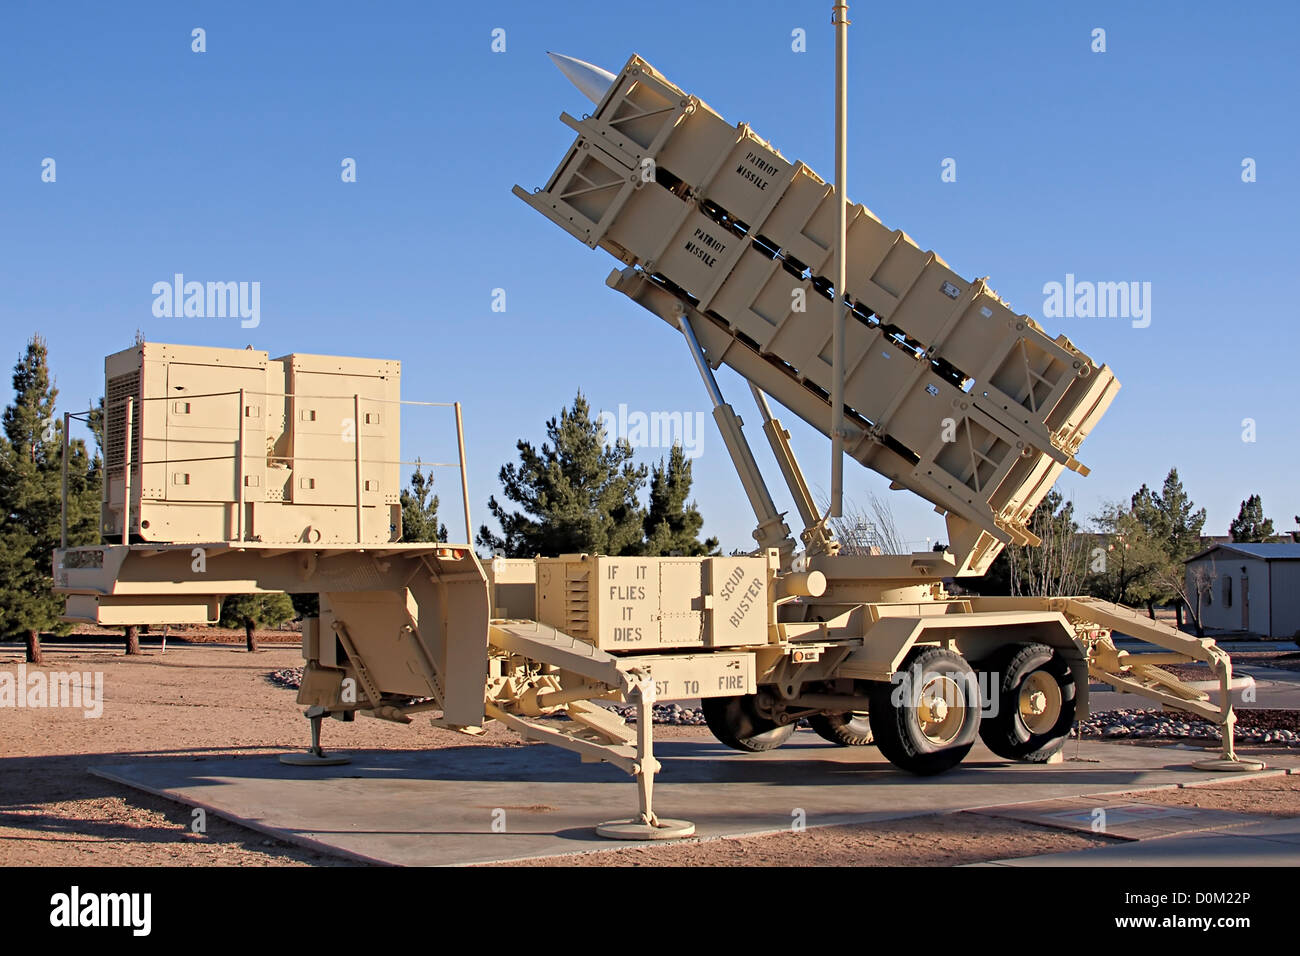 A Patriot missile battery labeled 'SCUD Buster' missile ...